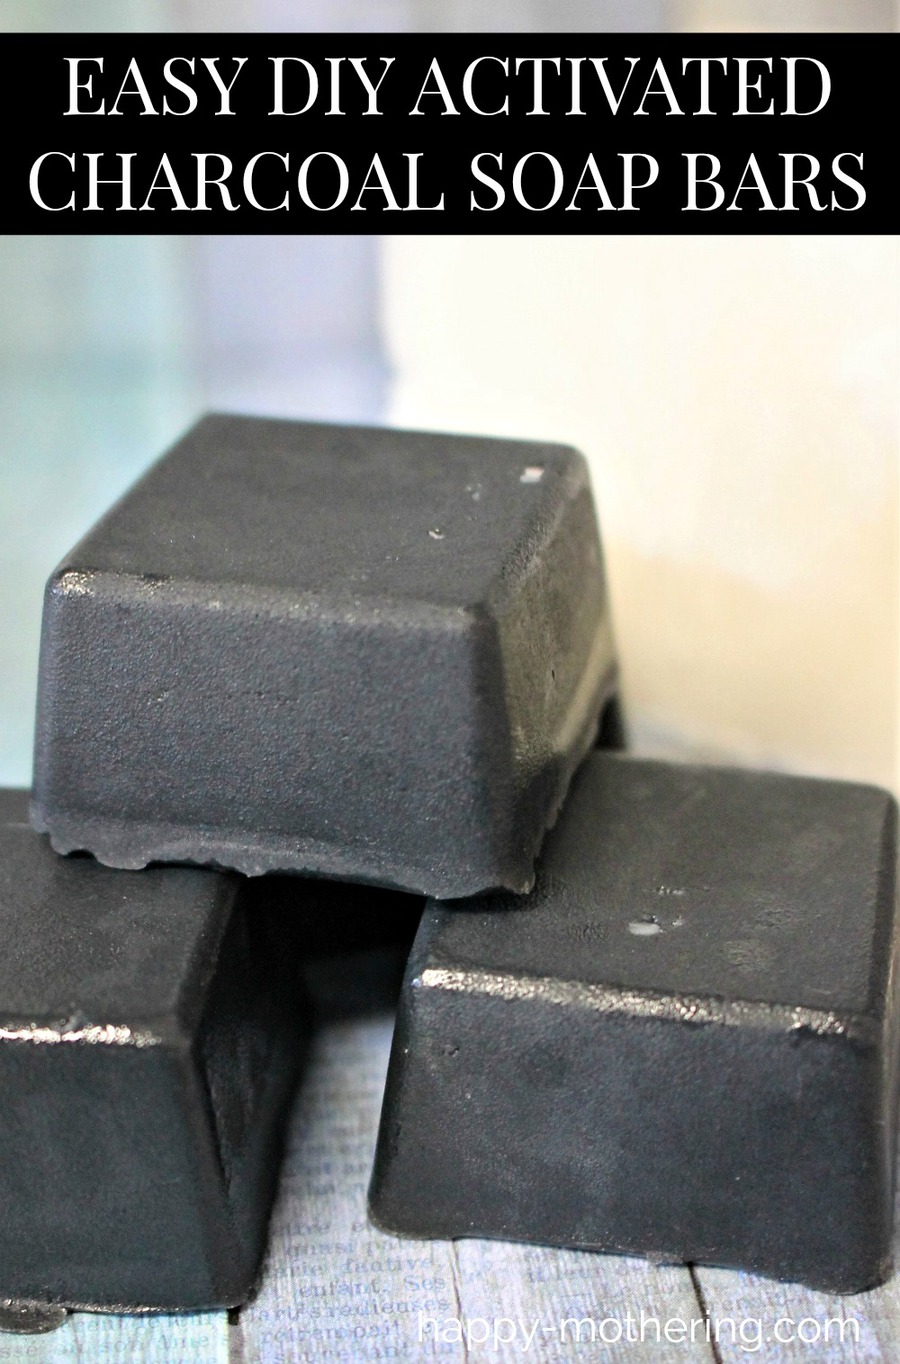 Are you looking for an easy DIY activated charcoal soap bars recipe? Our natural detox soap is handmade with shea butter melt and pour soap and has the added awesome benefits of tea tree oil. There are many uses for a black soap bar, including cleansing and detoxifying faces and skin. Safe for vegans.